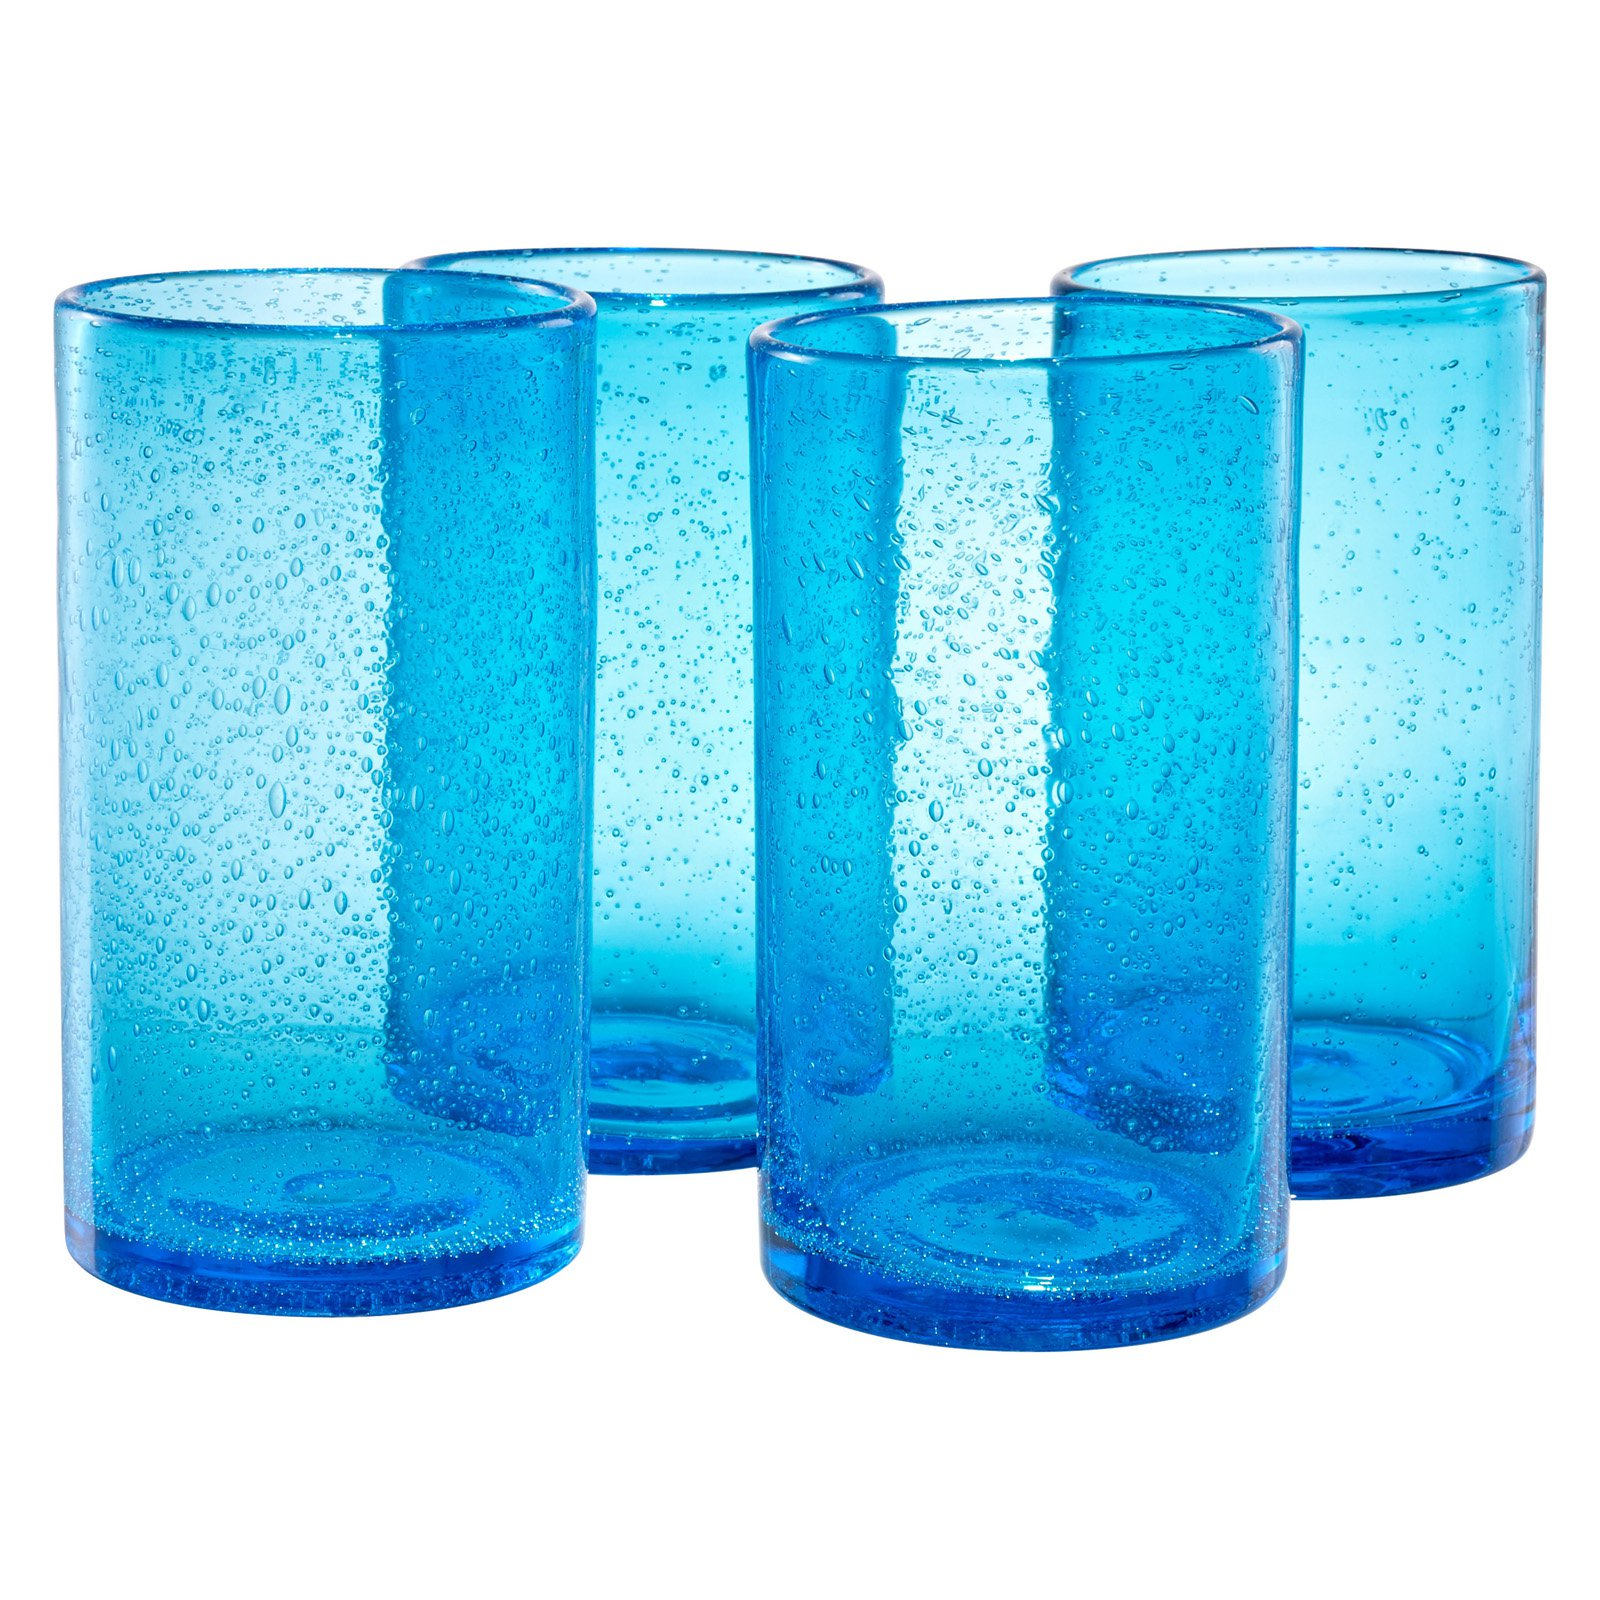 Artland Inc. Iris Turquoise HiBall Glasses - Set of 4